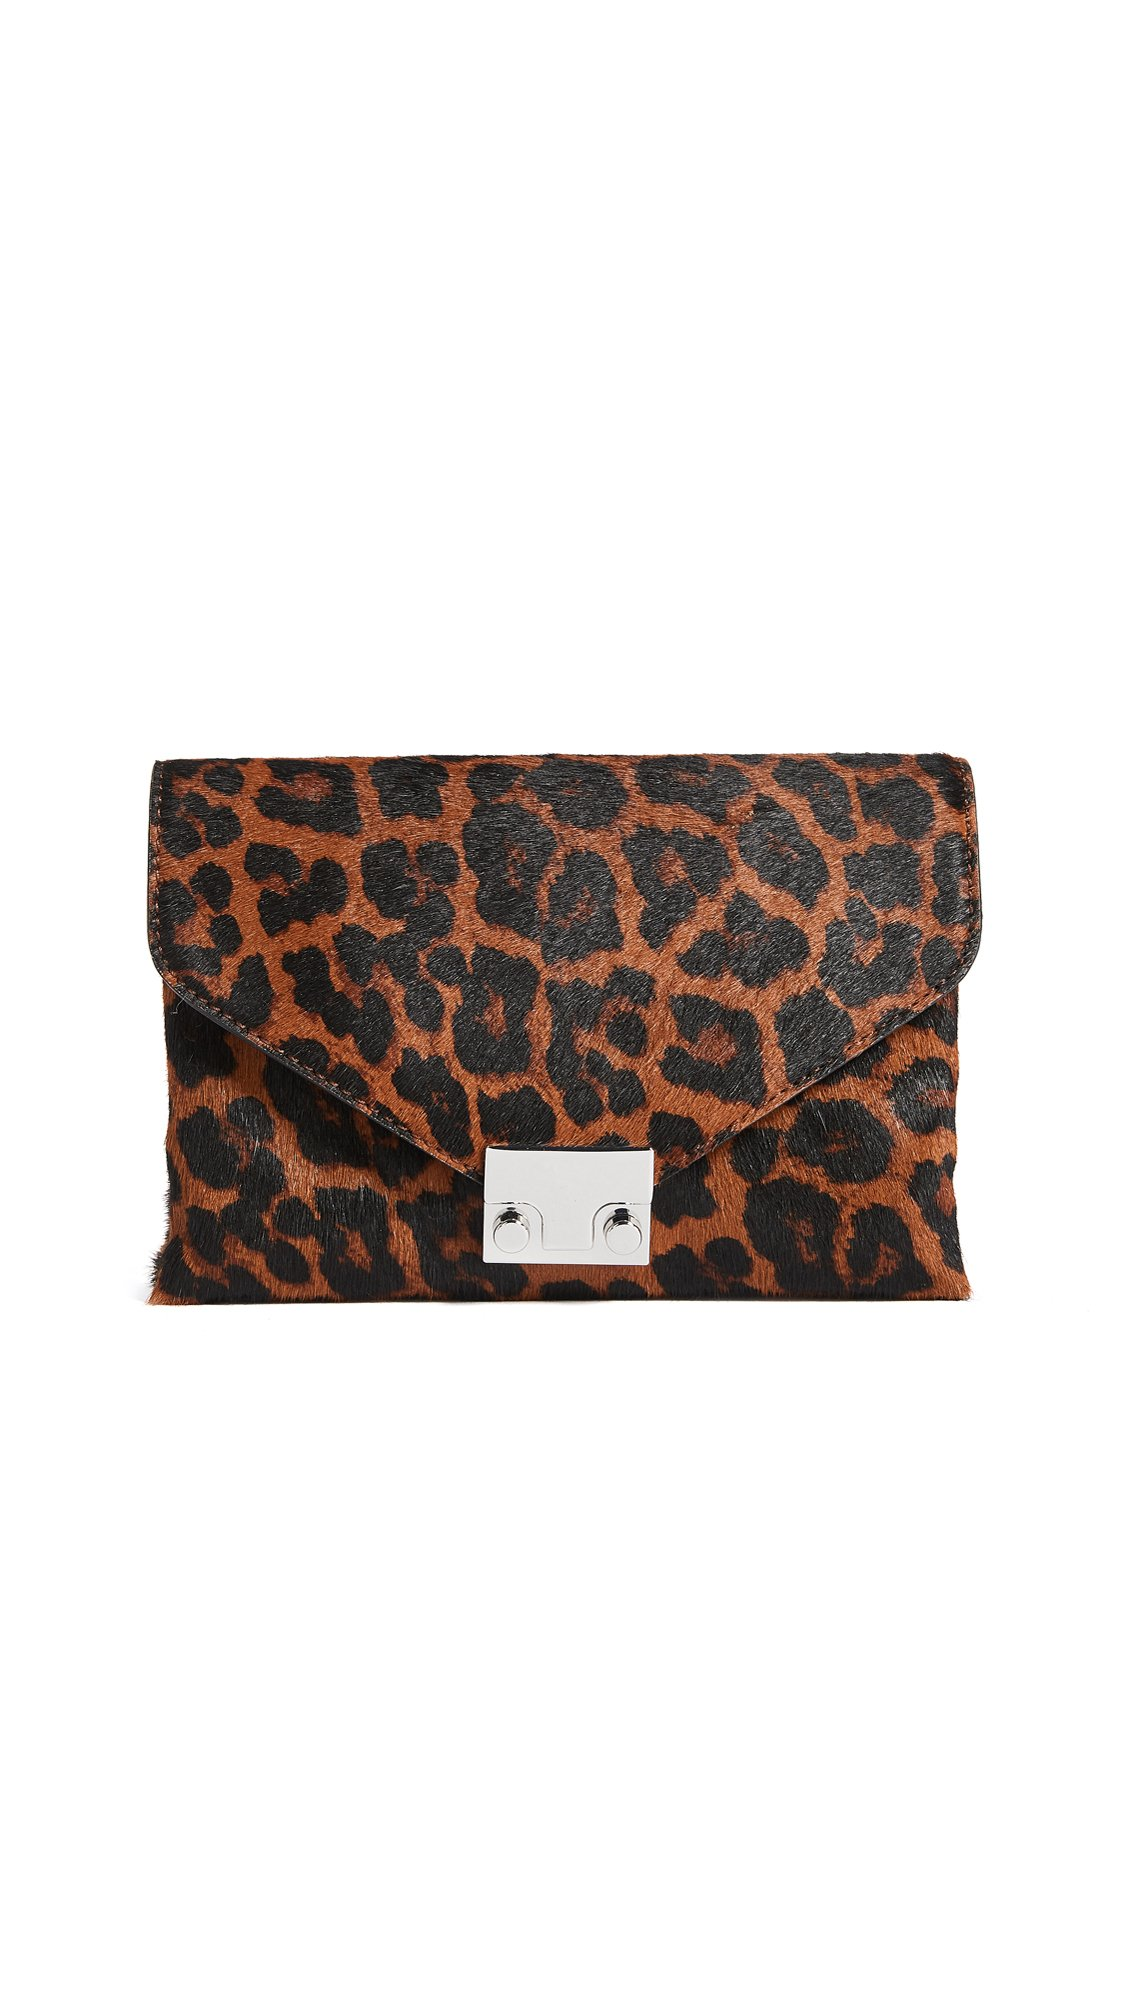 Loeffler Randall Women's Jr Lock Clutch, Leopard, One Size